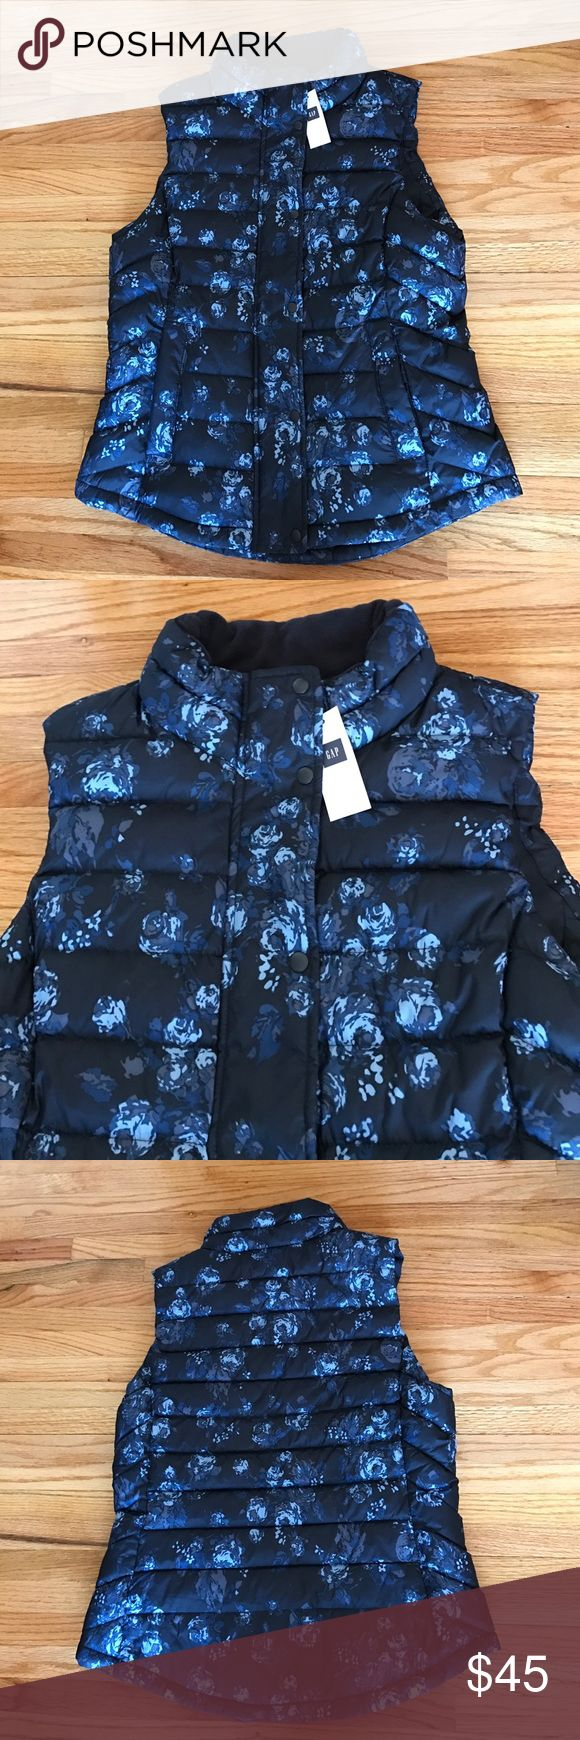 Gap Floral Vest NWT Gap Floral Vest. Size: Small. Color is dark navy blue with different shades of blue flowers & gray pattern throughout Vest. Zipper & snap button closure. 2 pockets. Fully lined. Looks great paired with blue jeans! Machine wash. Tumble dry. NO TRADES. GAP Jackets & Coats Vests